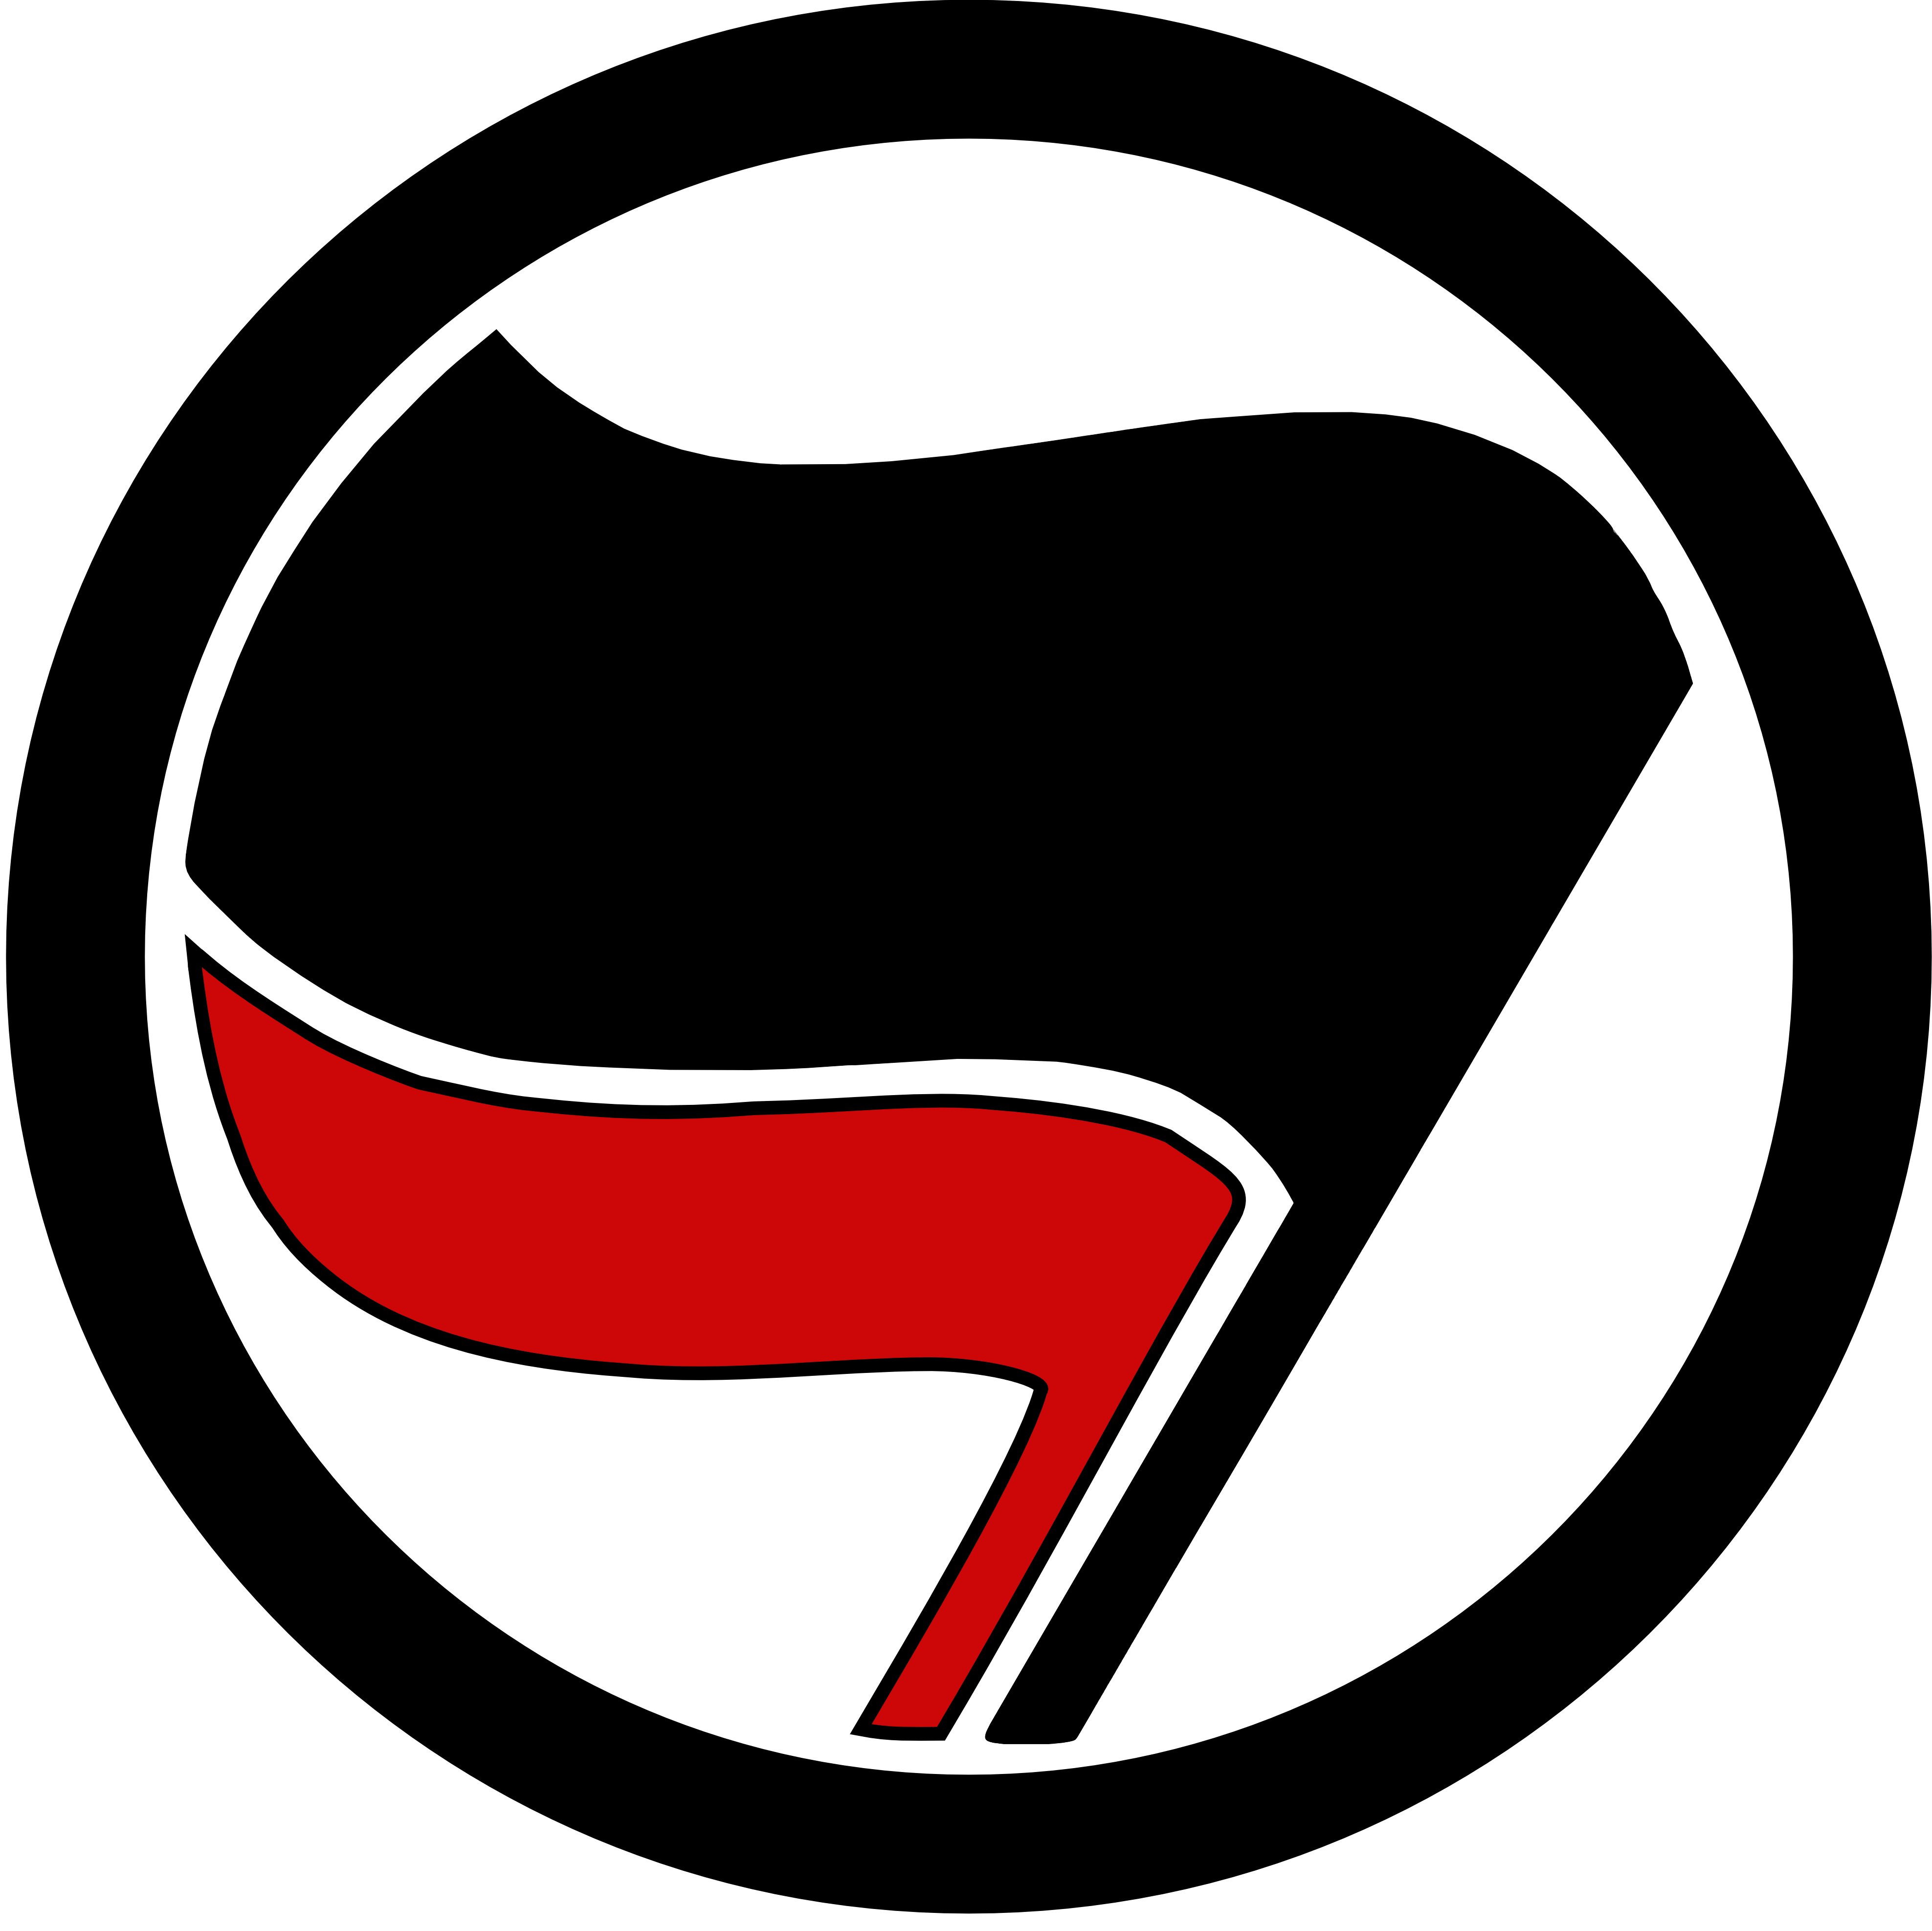 Selo Antifascista